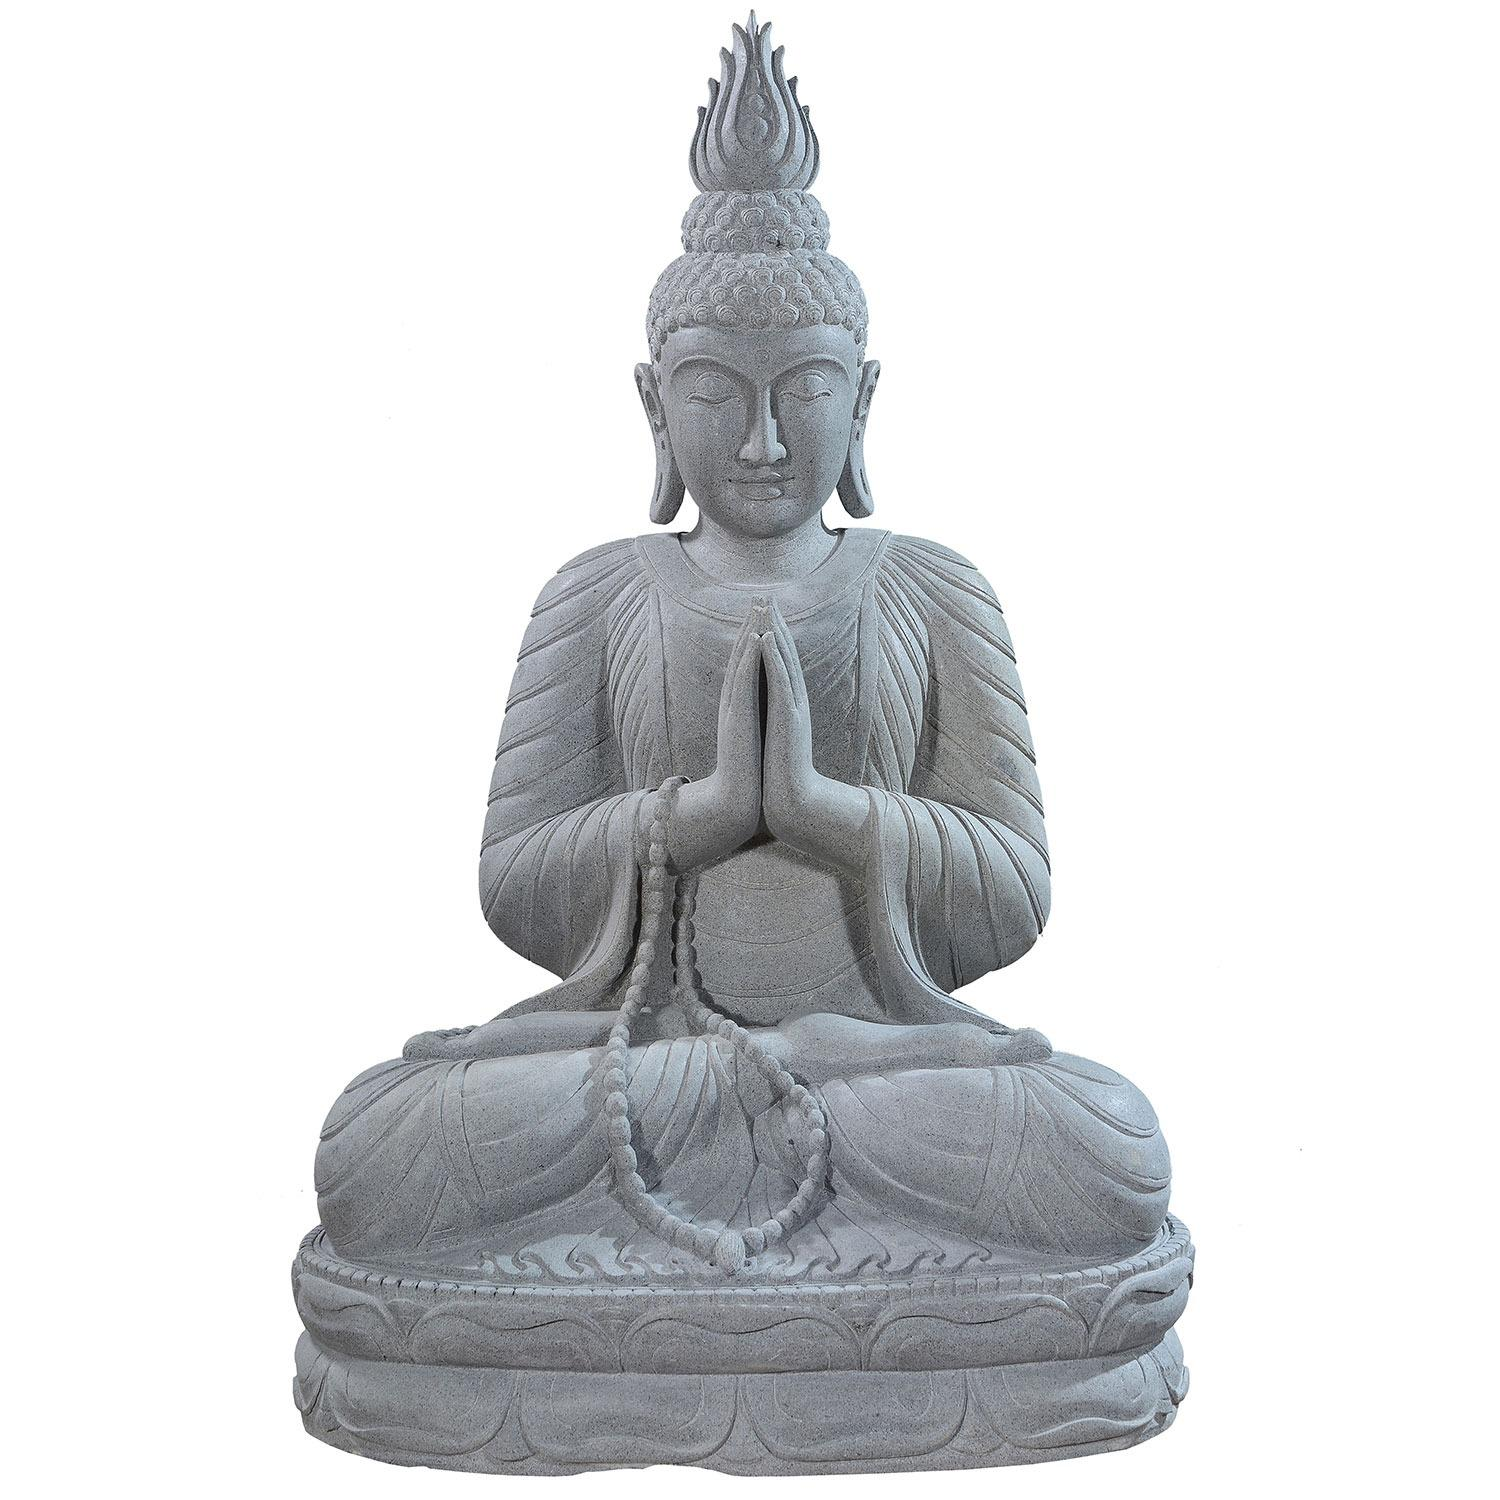 Large stone garden statue of a Buddha in full lotus position